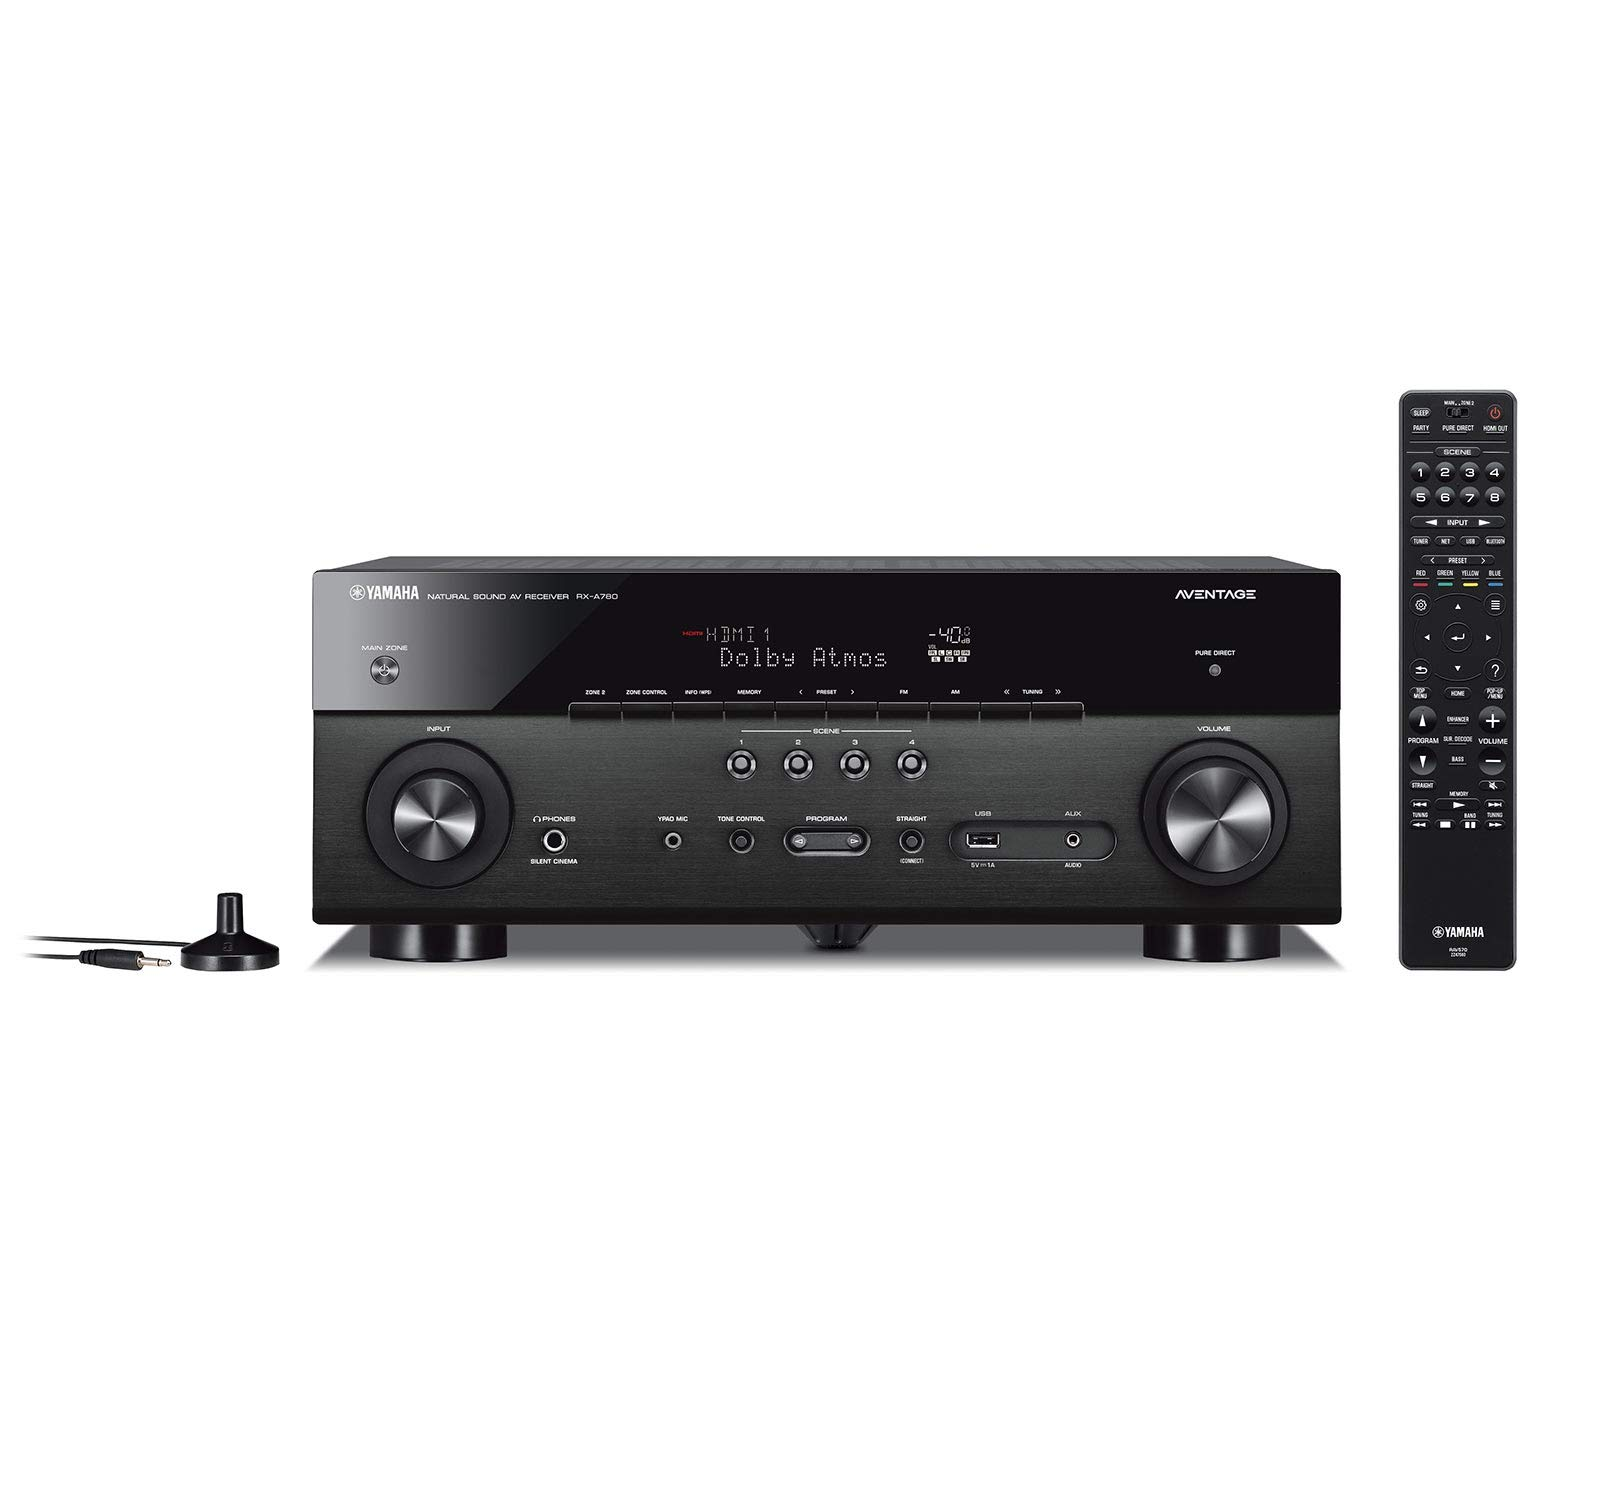 Yamaha RX-A780 AVENTAGE 7.2-Channel AV Receiver with MusicCast - Black (Renewed) by Yamaha